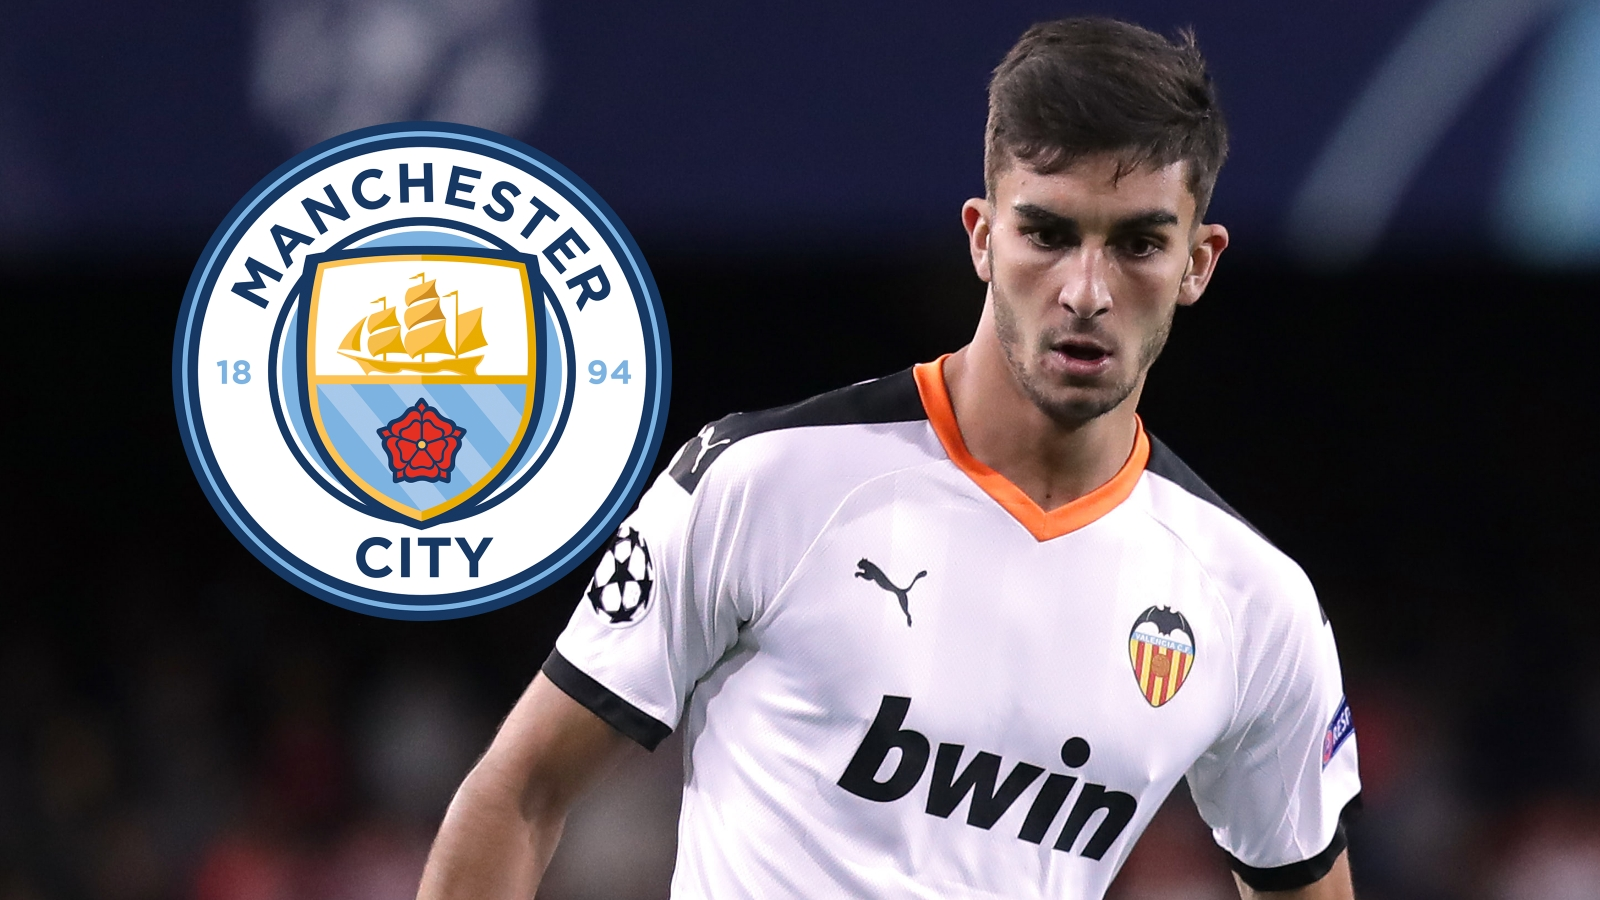 Manchester City are close to agreeing a deal to sign Valencia winger Ferran Torres for an initial fee of 20.9 million pounds ($27.13 million), British media reported on Wednesday. Torres, 20, scored six goals and grabbed eight assists for Valencia in all competitions this season as they finished ninth in Spain's La Liga. The Times […]